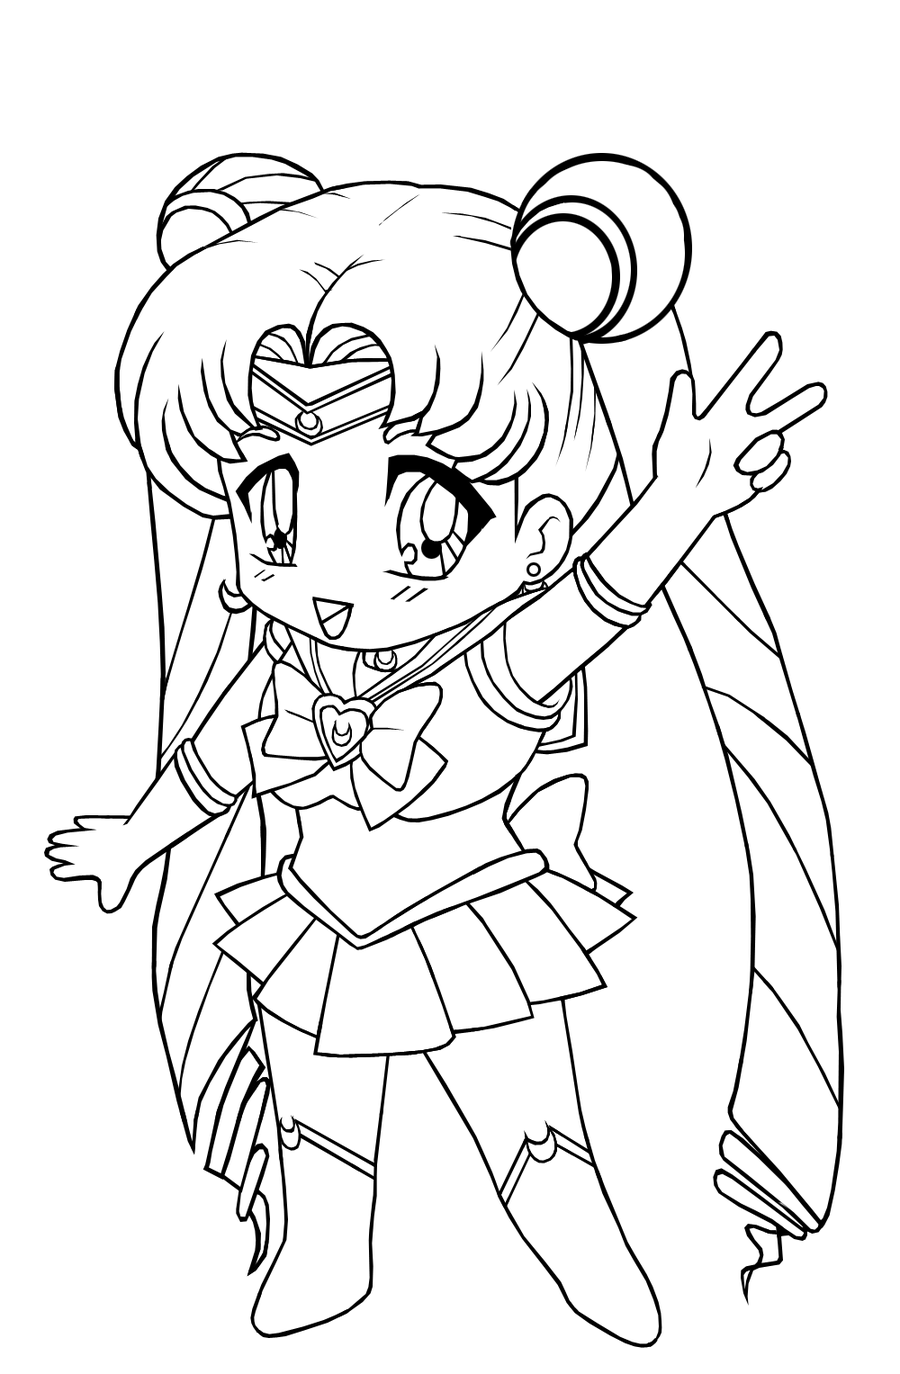 Silor moon coloring pagrs minister coloring for Coloring pages sailor moon